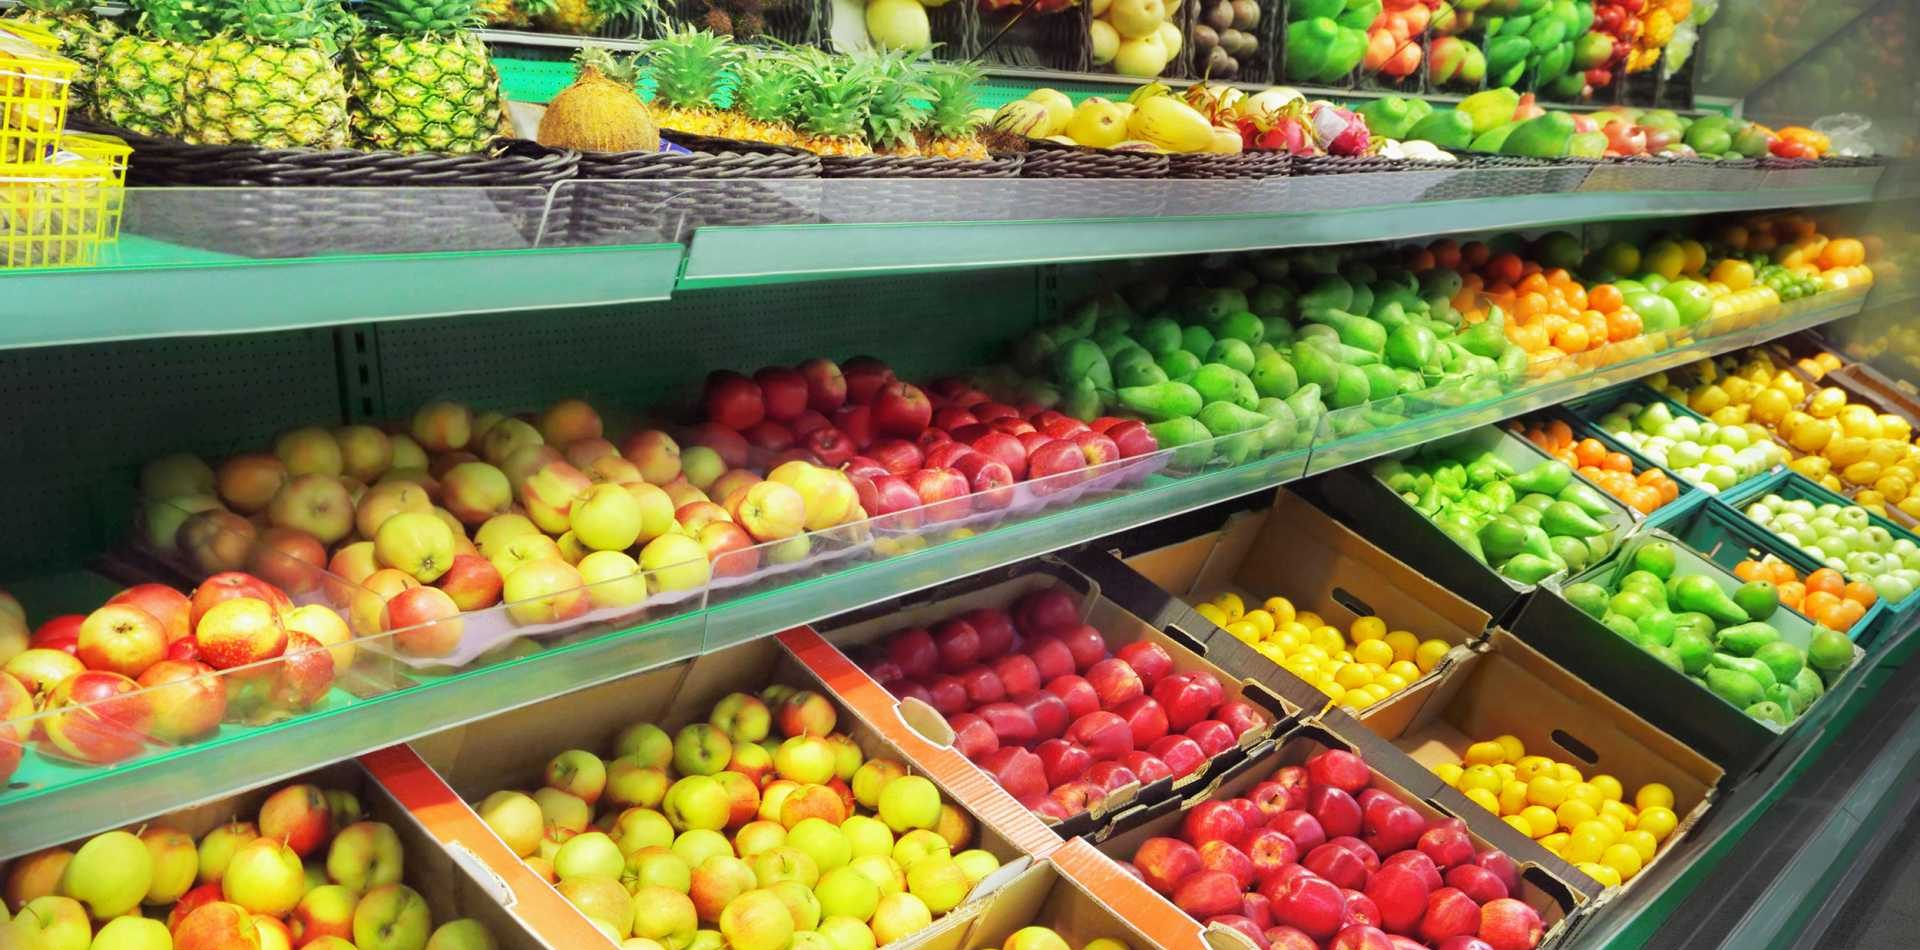 fruit in supermarket Image: Shutterstock